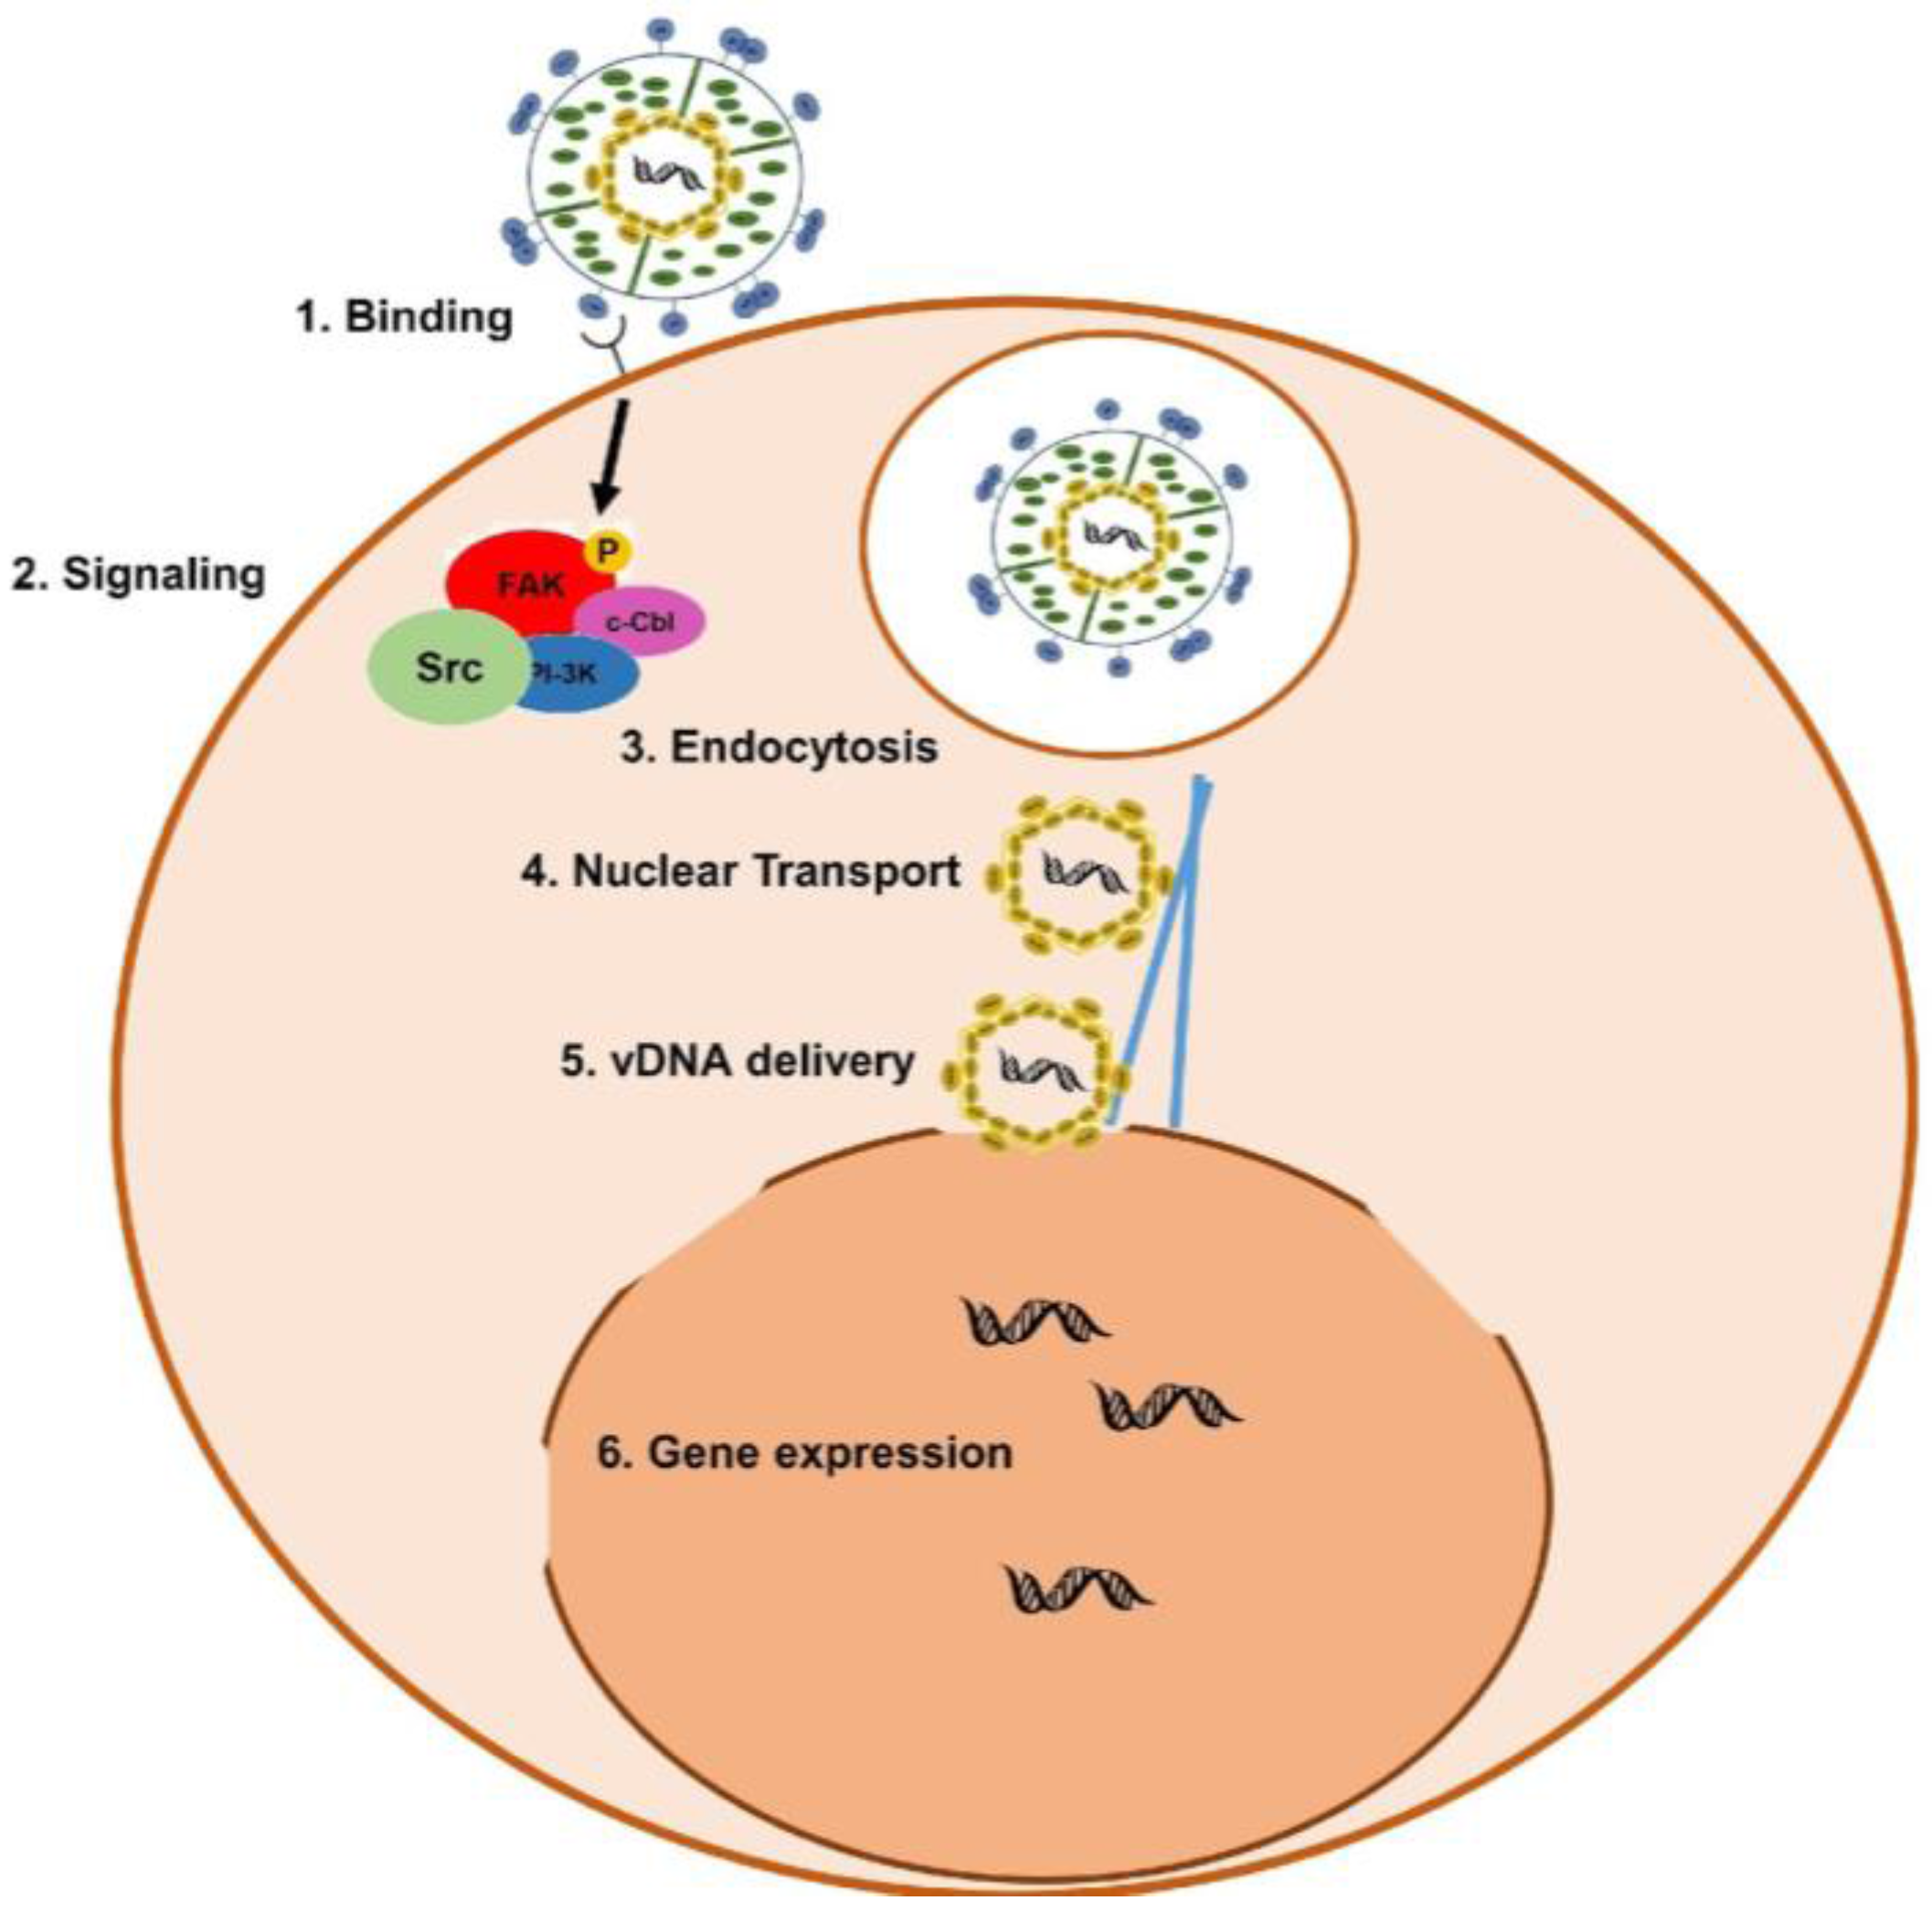 notch proteins and kaposis sarcoma essay Kaposi's sarcoma (ks) is a type of cancer that can form in the skin, lymph nodes, or other organs kshv proteins are uniformly detected in ks cancer cells.